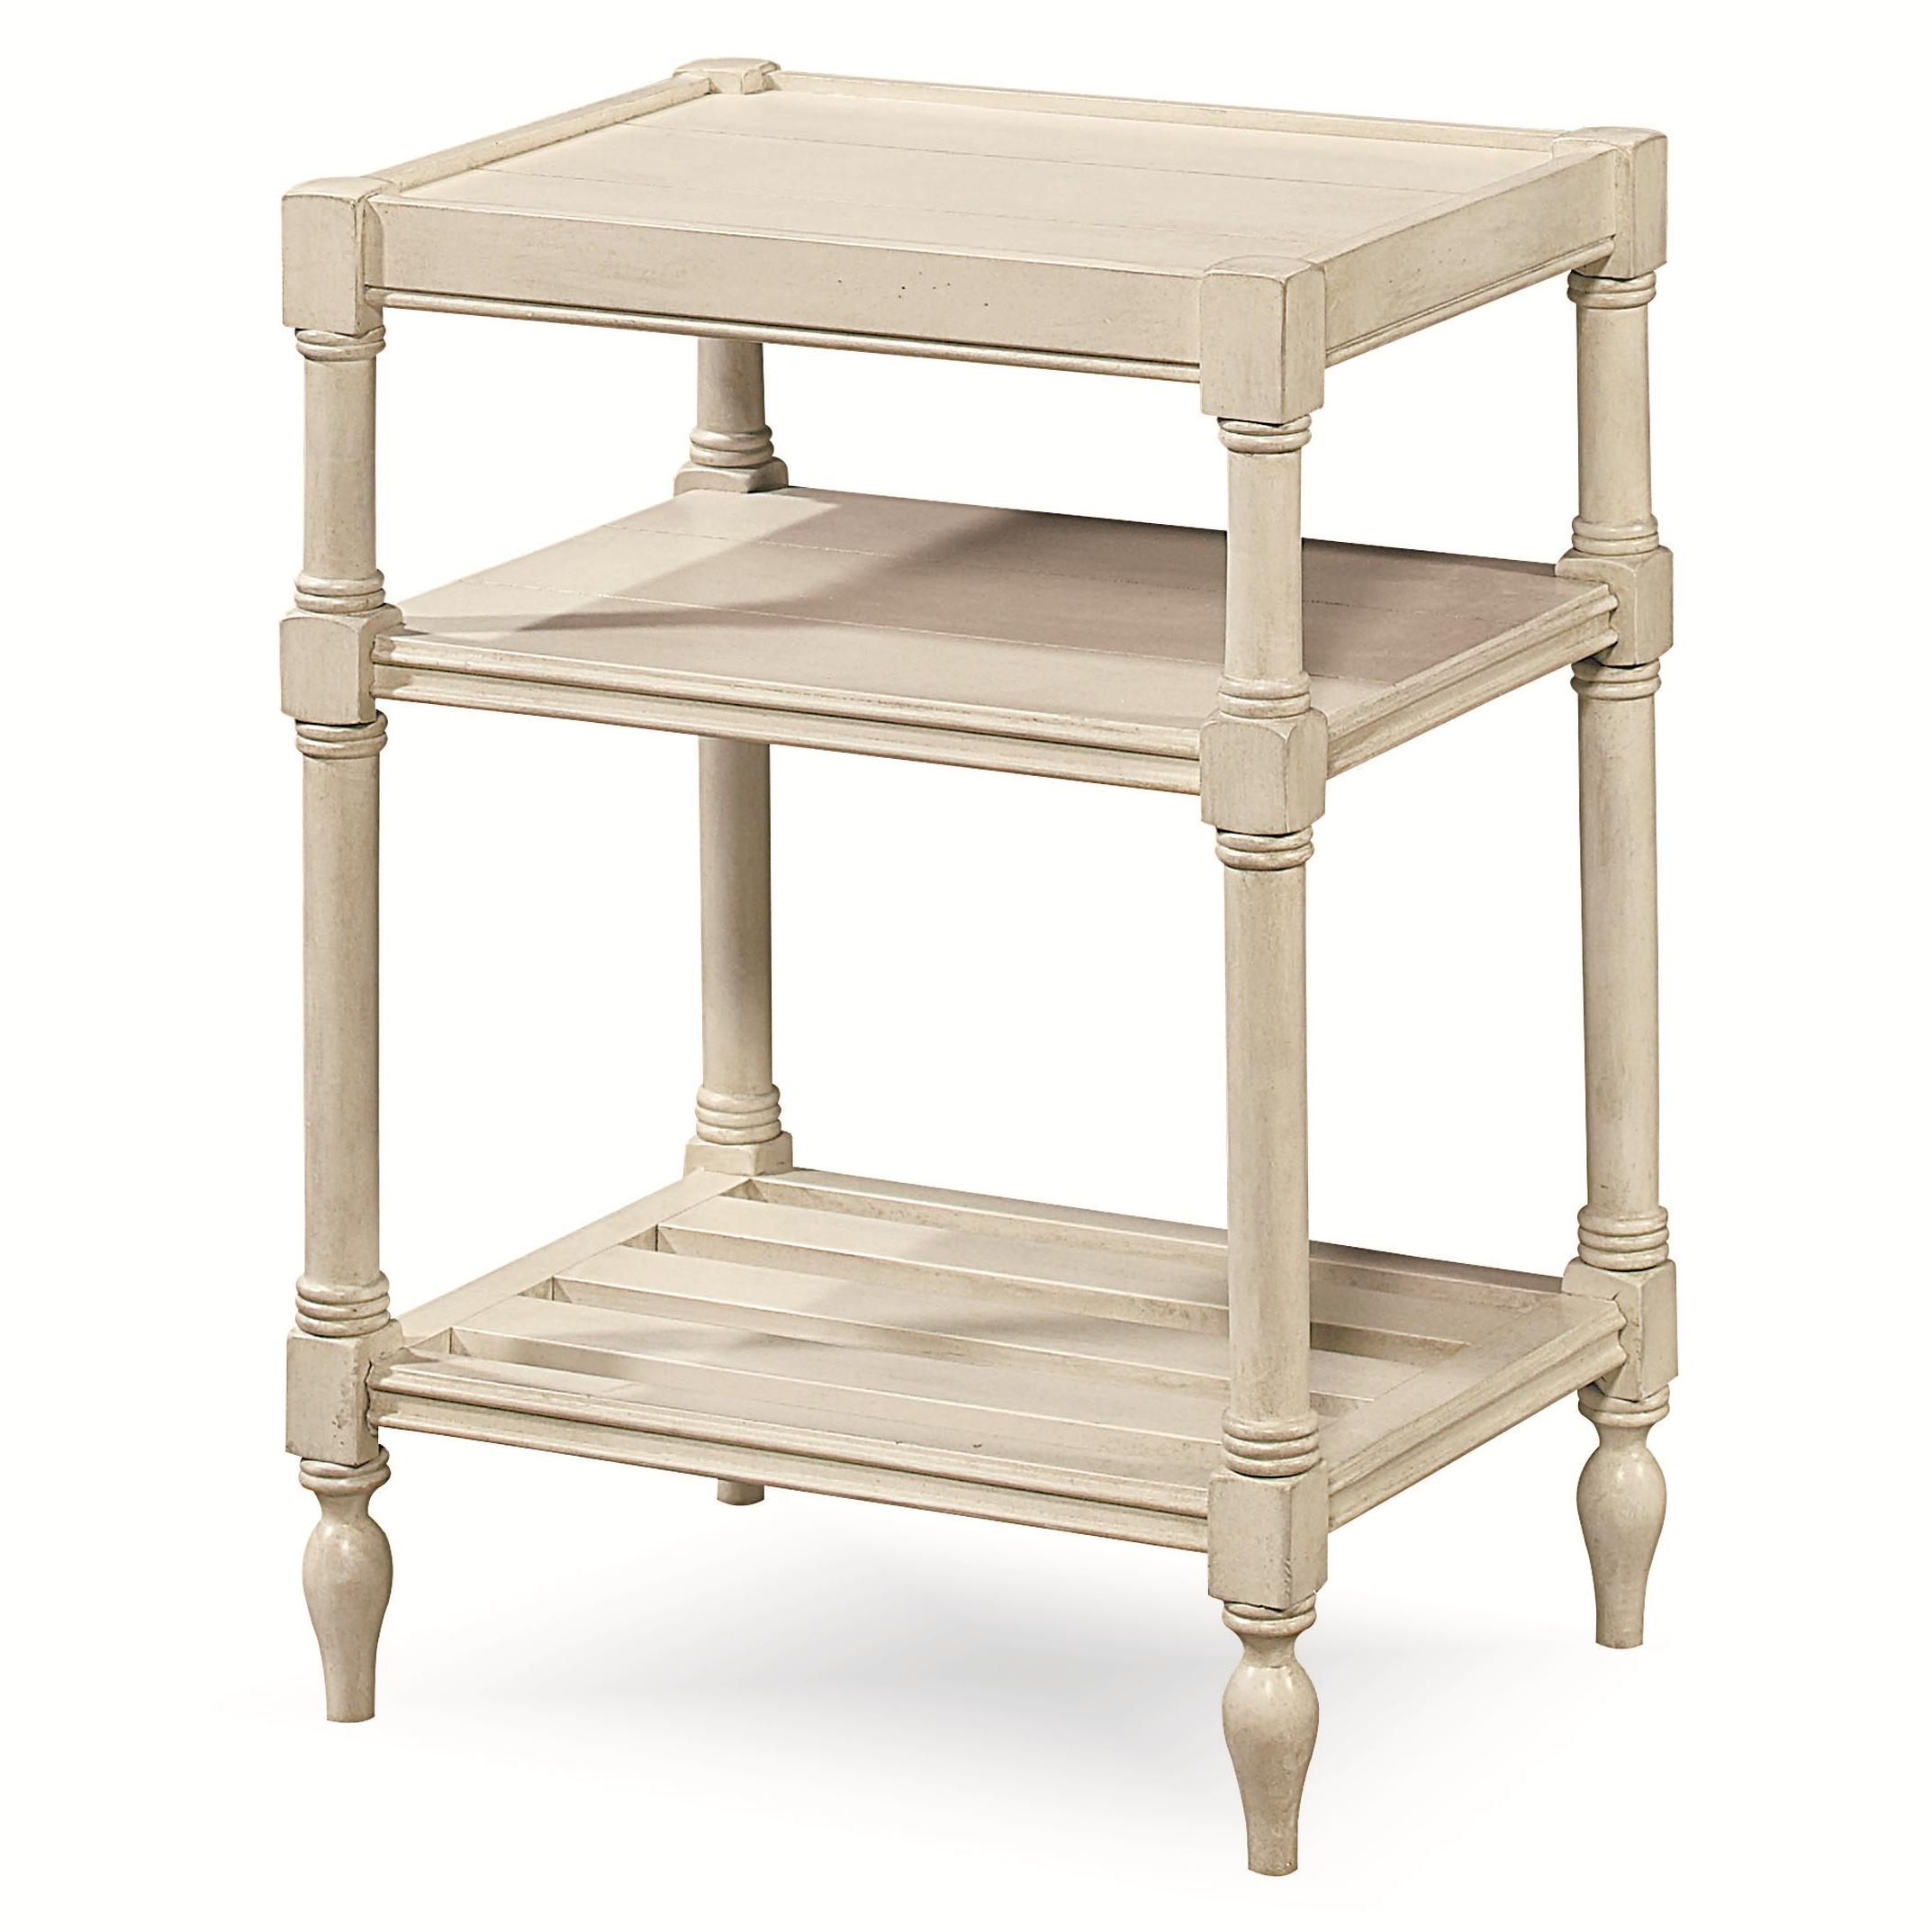 Summer Hill Chair side Table by Universal at Stoney Creek Furniture